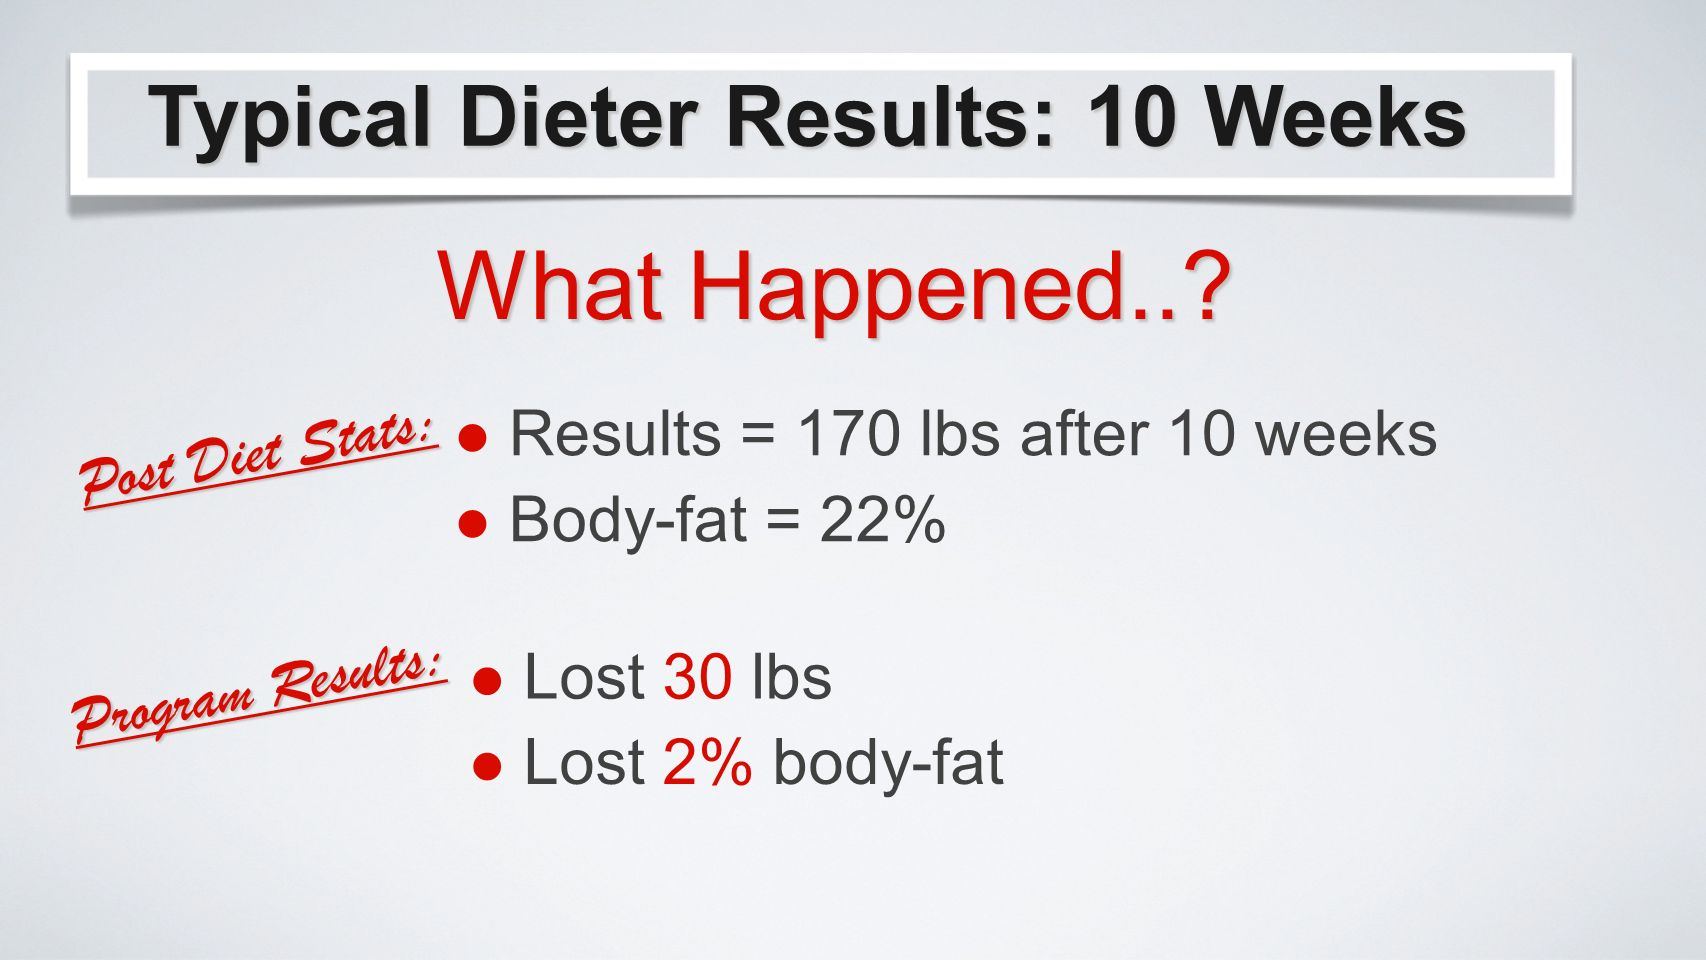 Results = 170 lbs after 10 weeks Typical Dieter Results: 10 Weeks What Happened...